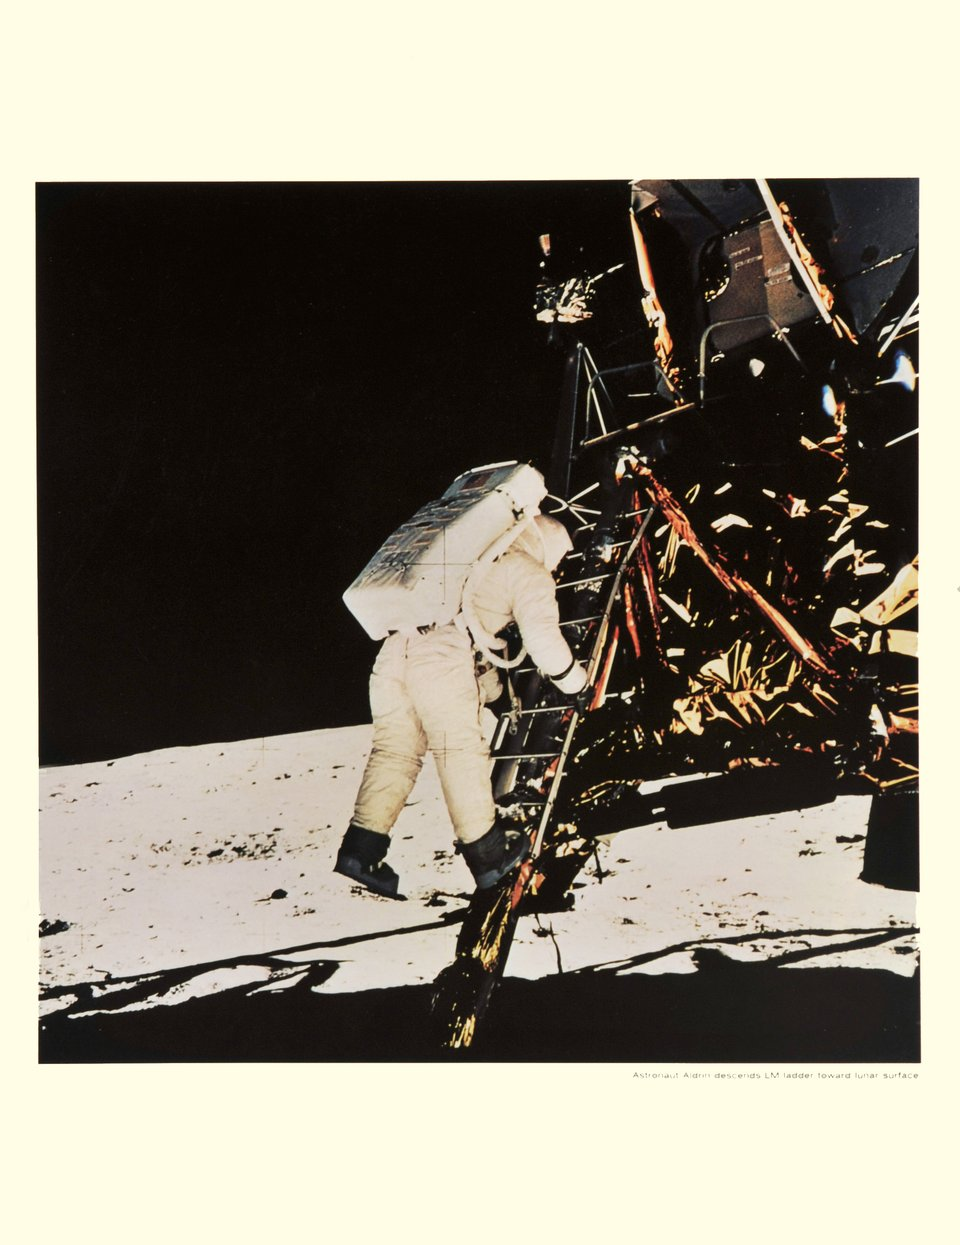 Apollo XI, Astronaut Aldrin descends LM ladder toward lunar surface – Vintage poster – NASA – 1969